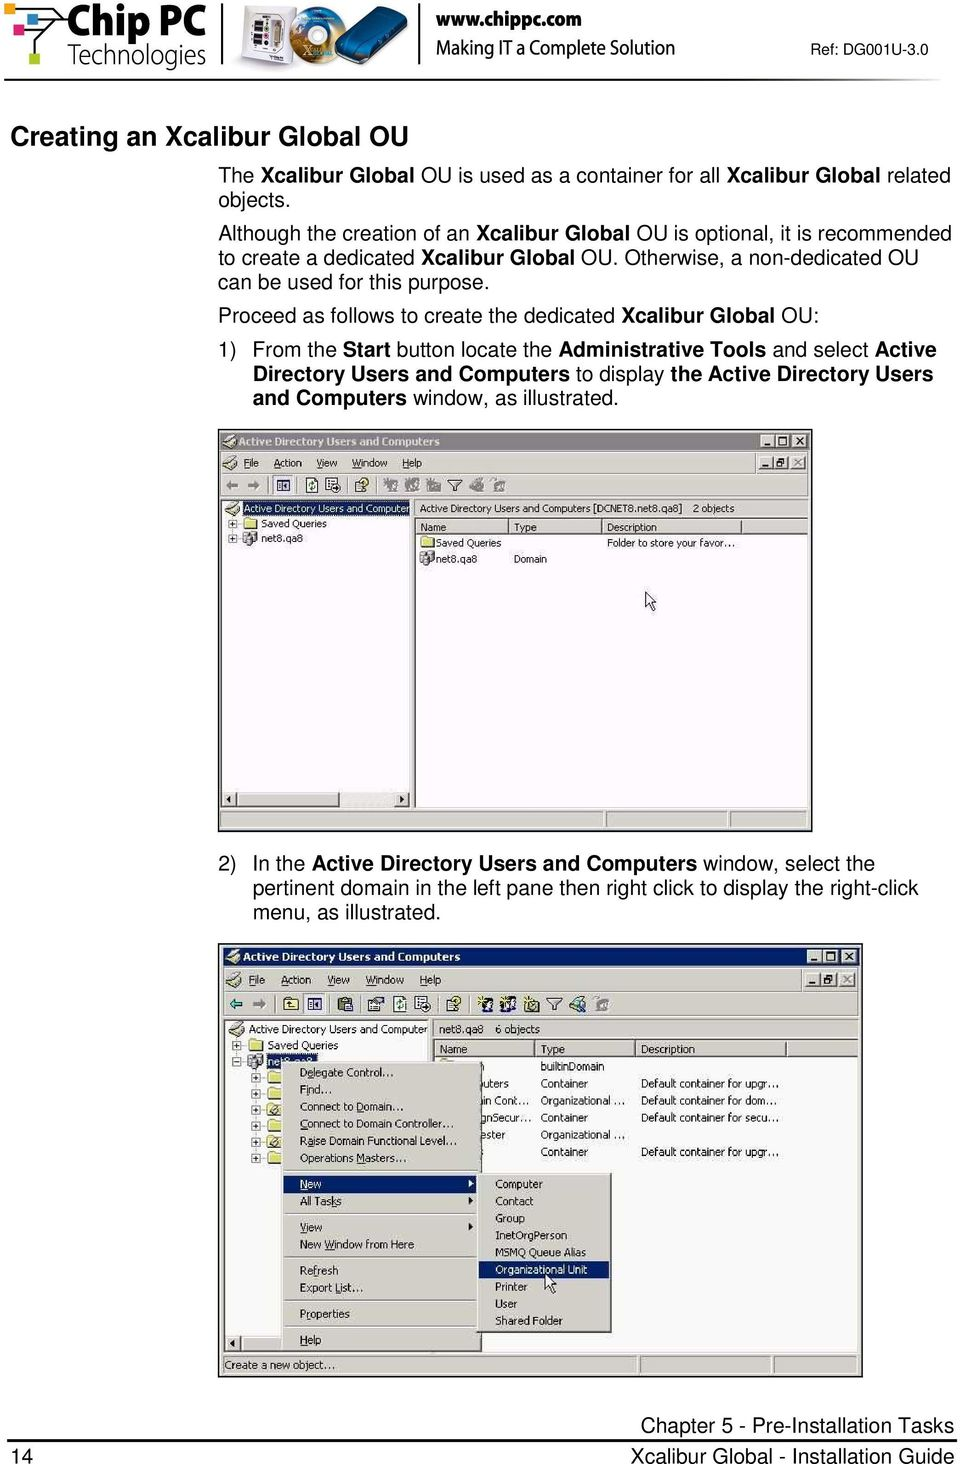 Proceed as follows to create the dedicated Xcalibur Global OU: 1) From the Start button locate the Administrative Tools and select Active Directory Users and Computers to display the Active